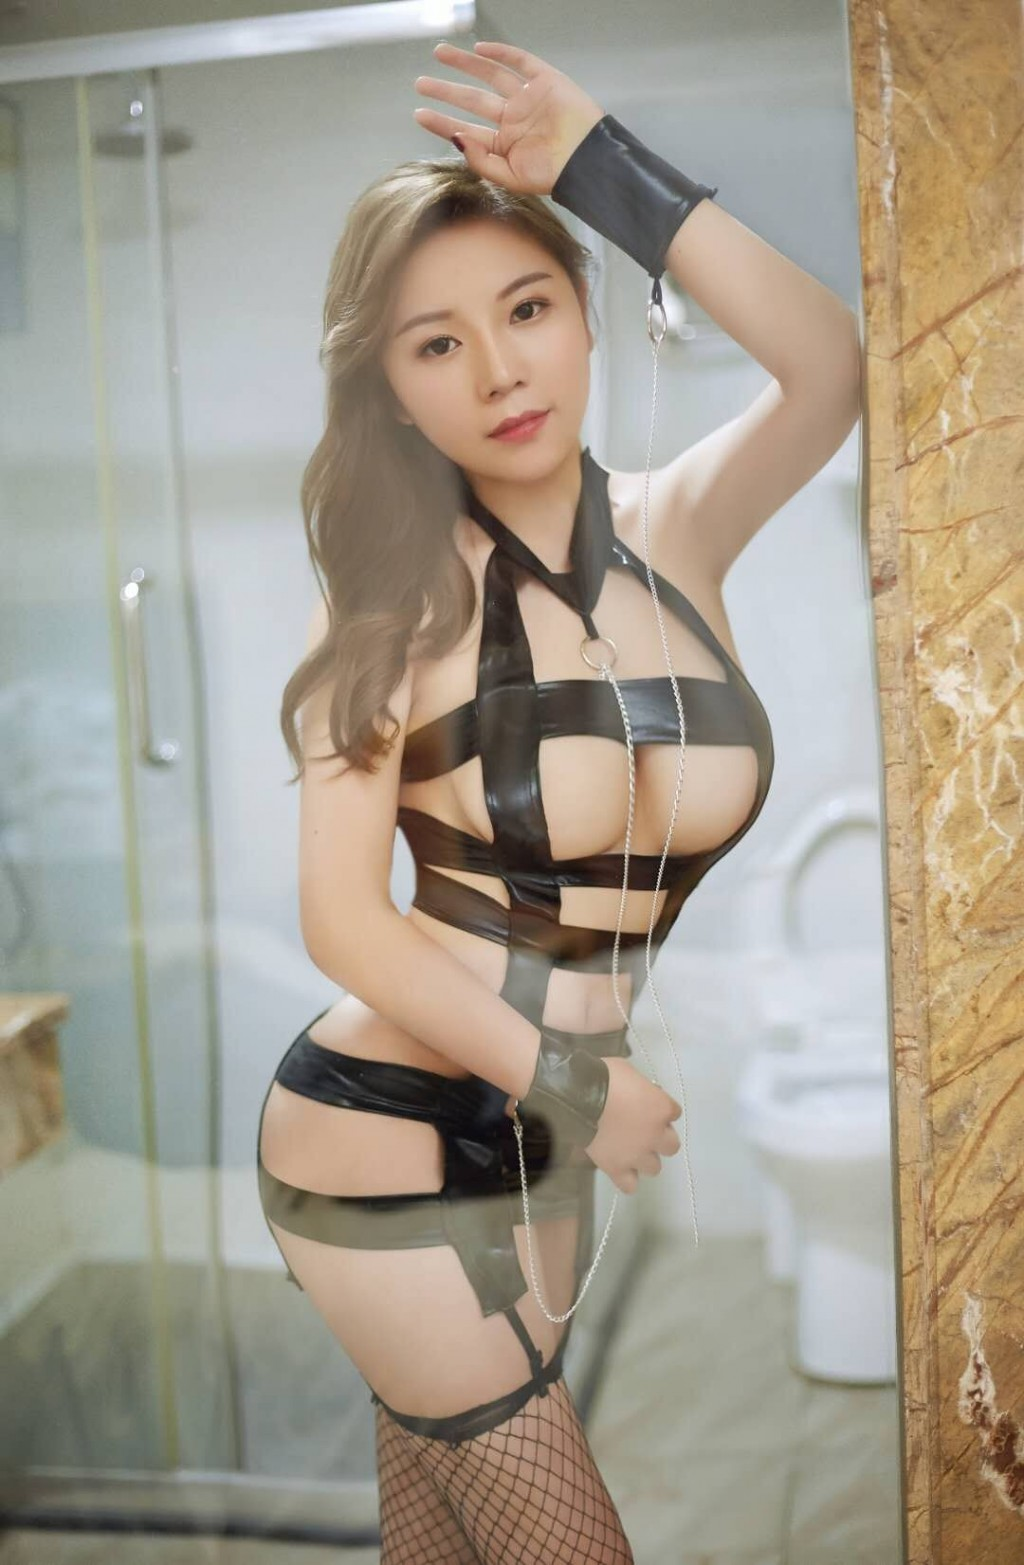 Backpage escorts lima oh